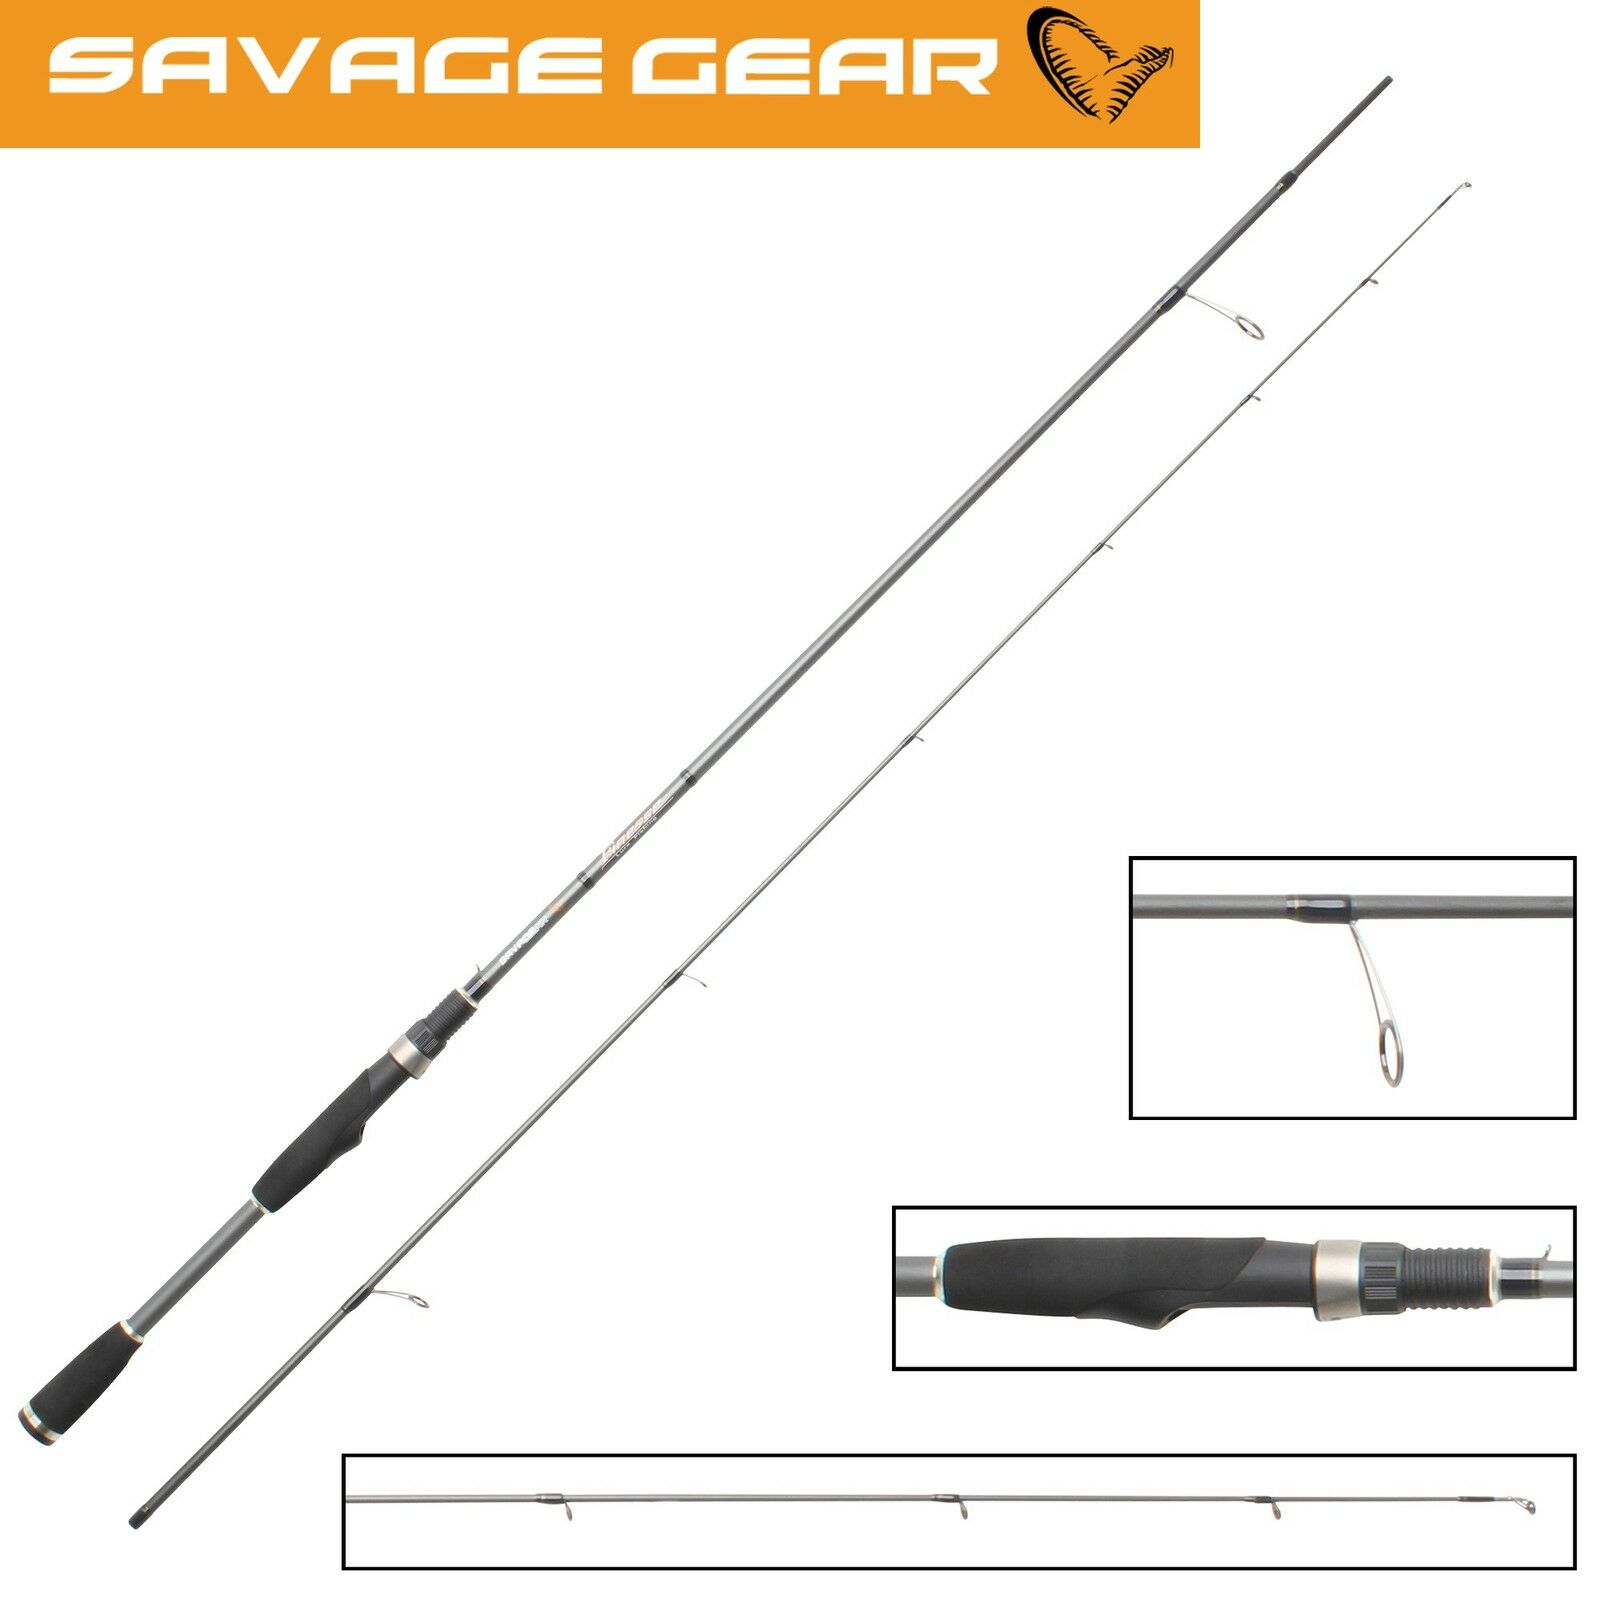 Savage Gear Finezze Dropshot 224cm 2-12g Spinnrute Drop Shot Angeln